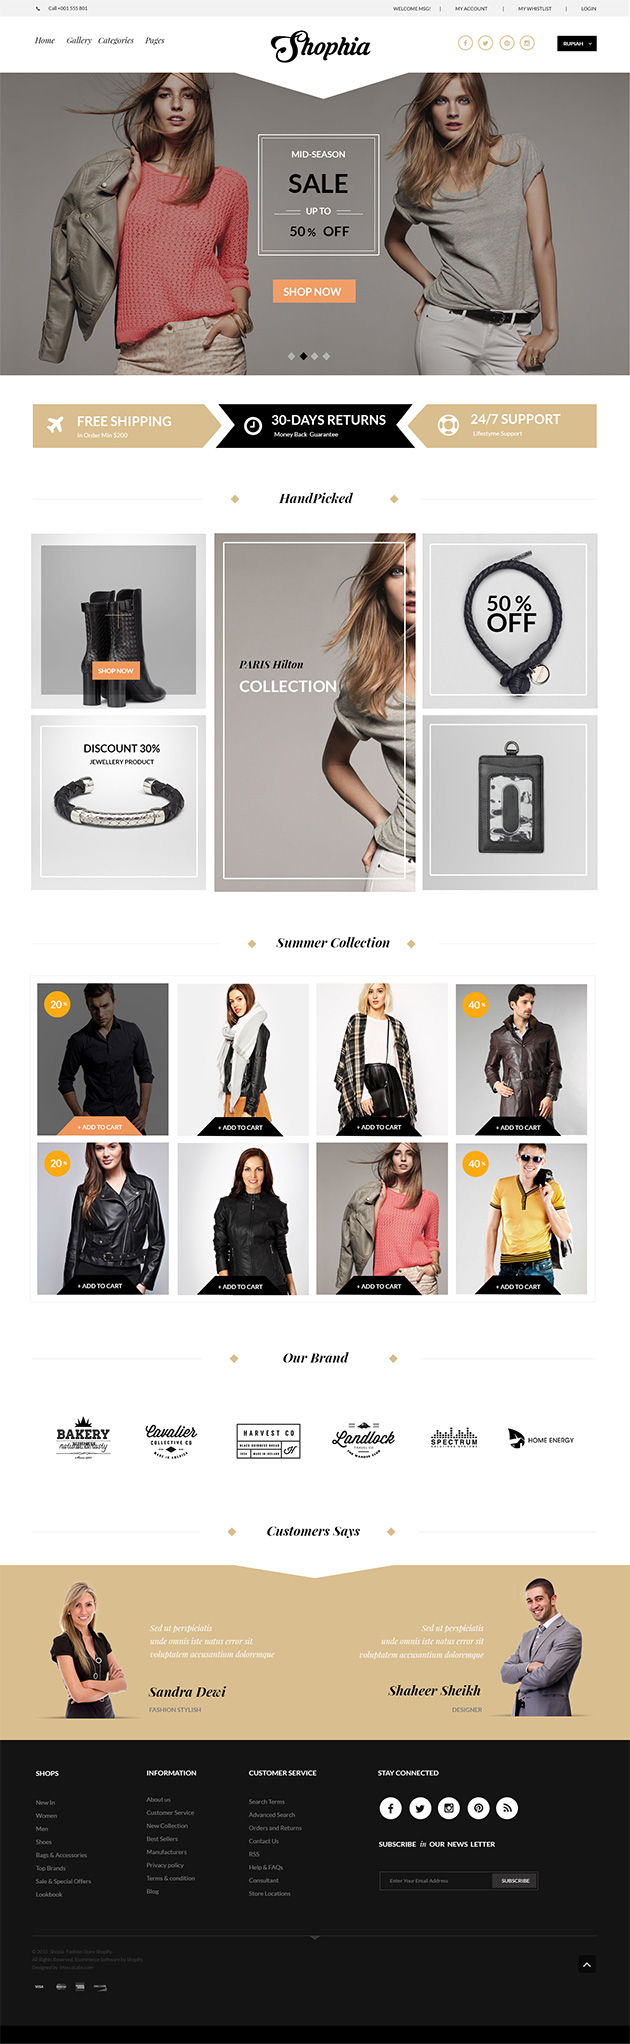 Free eCommerce site landing page template